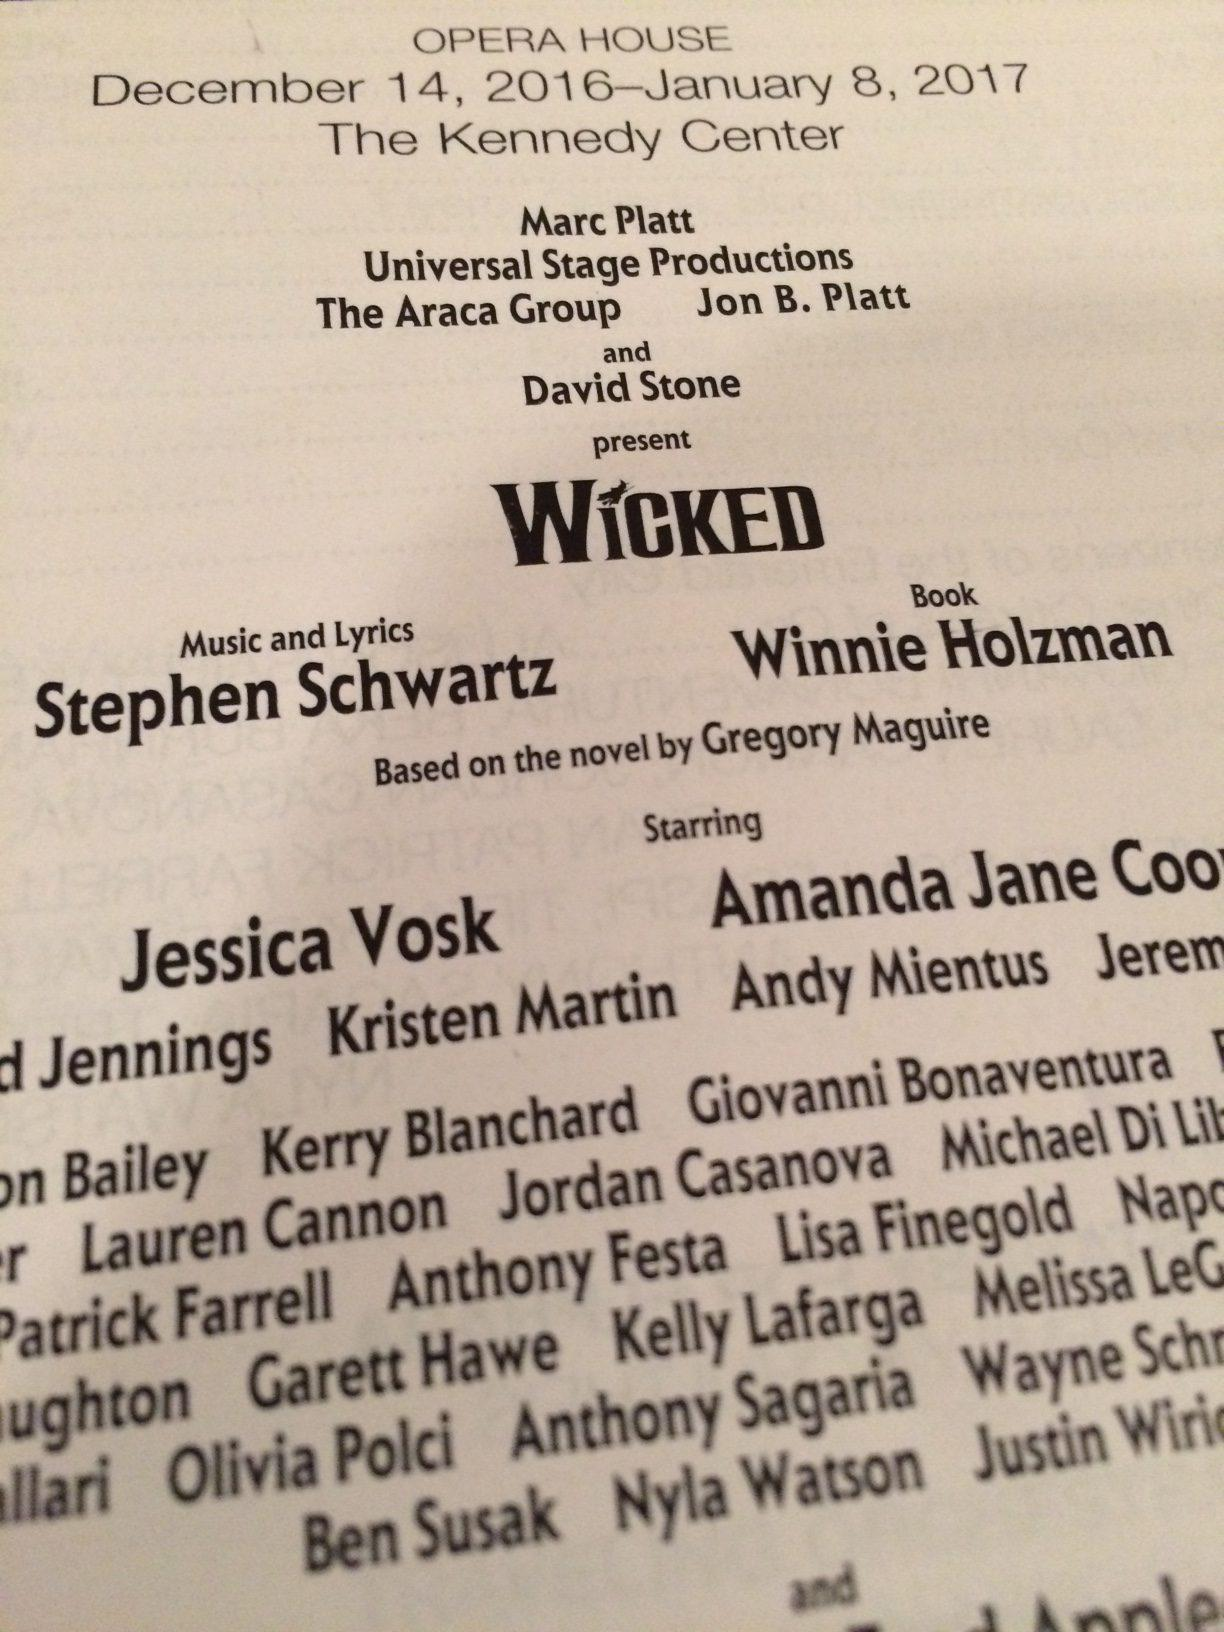 The playbill for